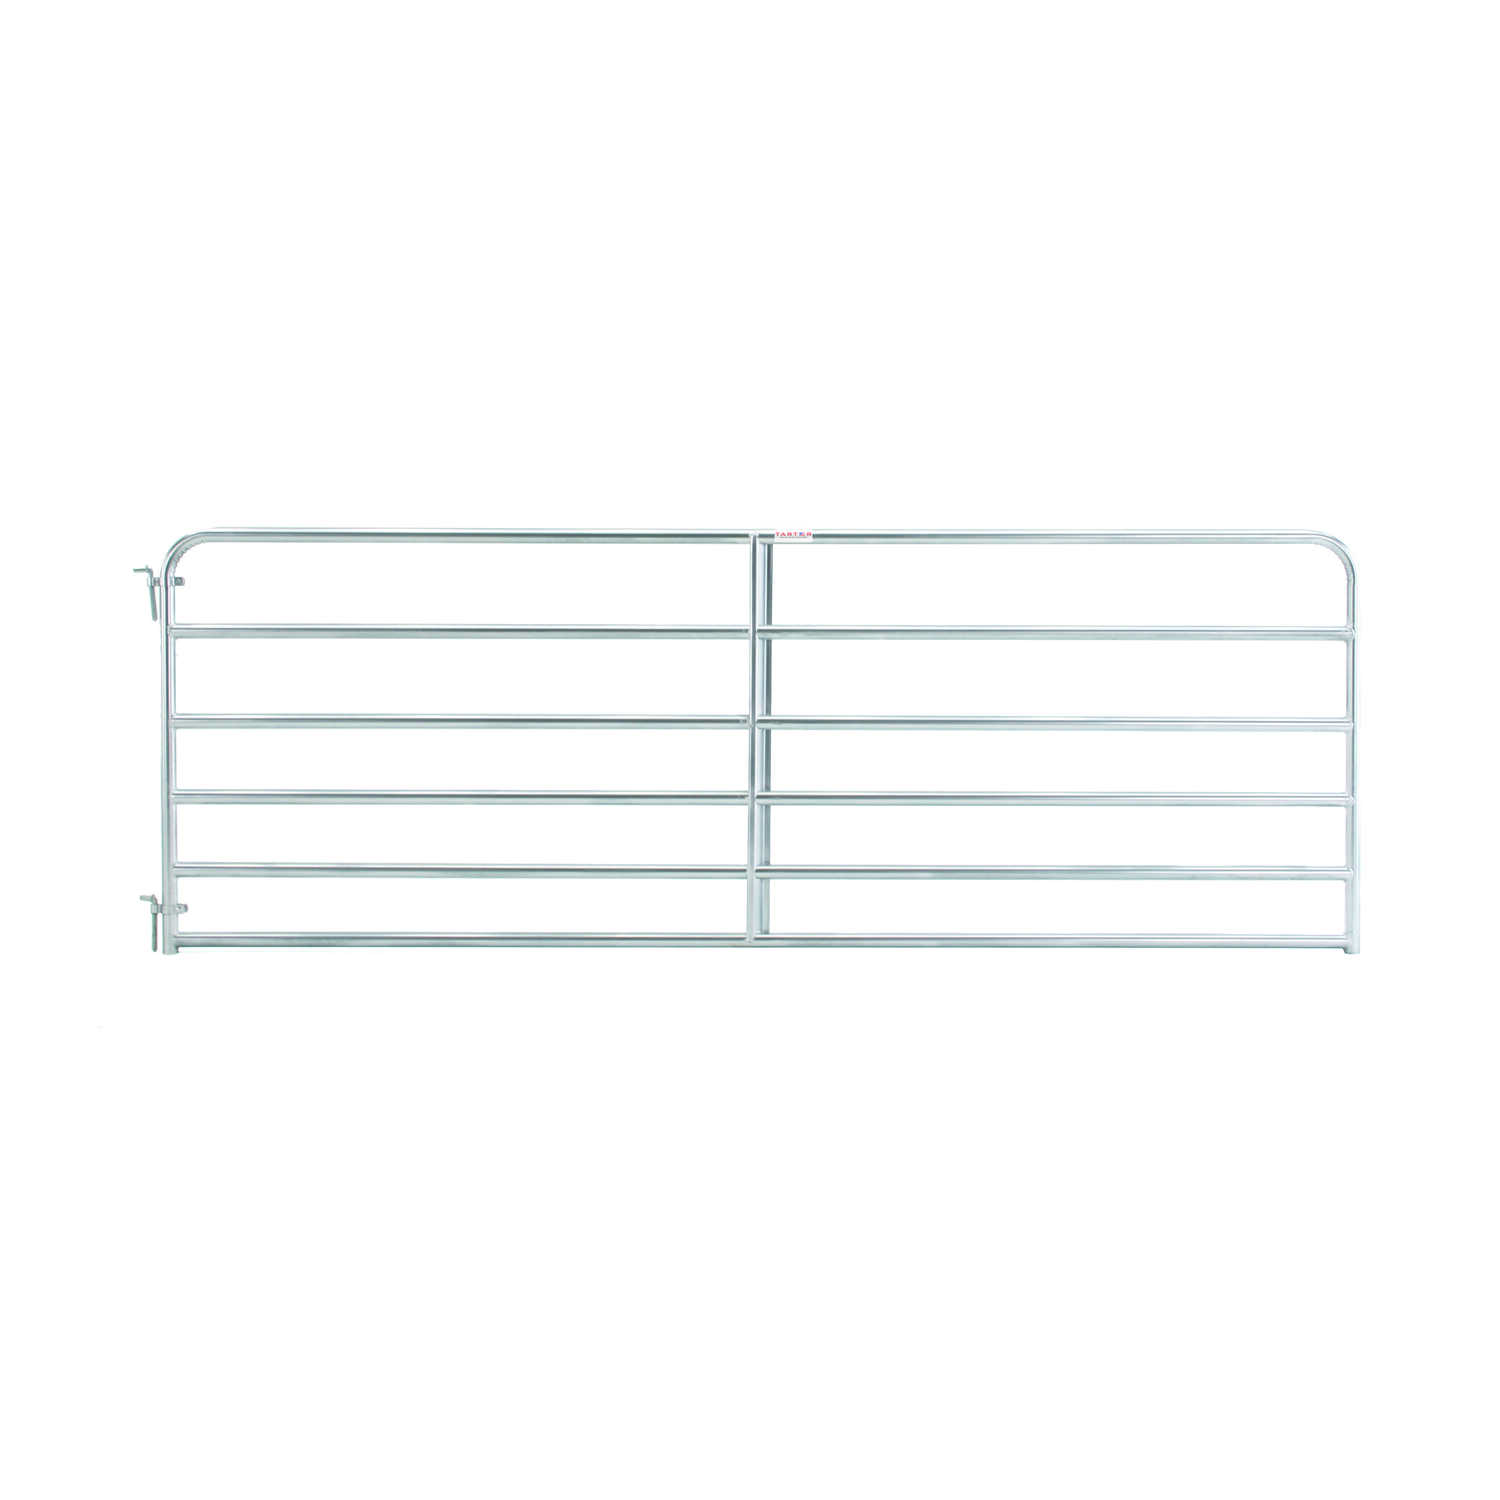 Tarter  50 in. H x 1.75 in. W Galvanized Steel  Tube Gate